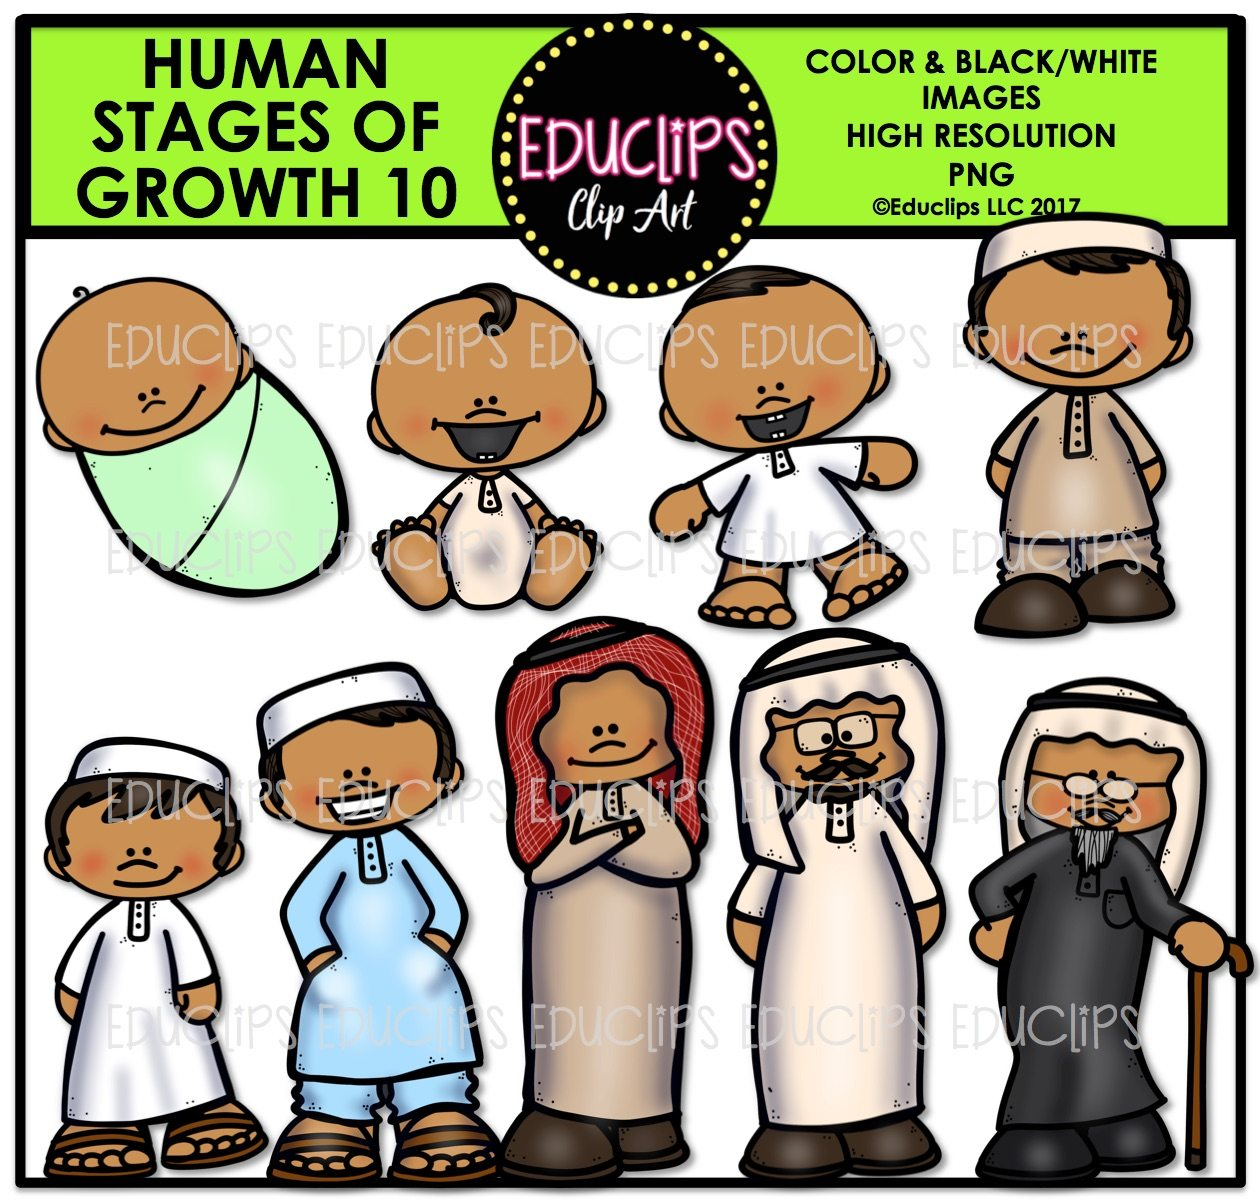 Human Stages Of Growth 10